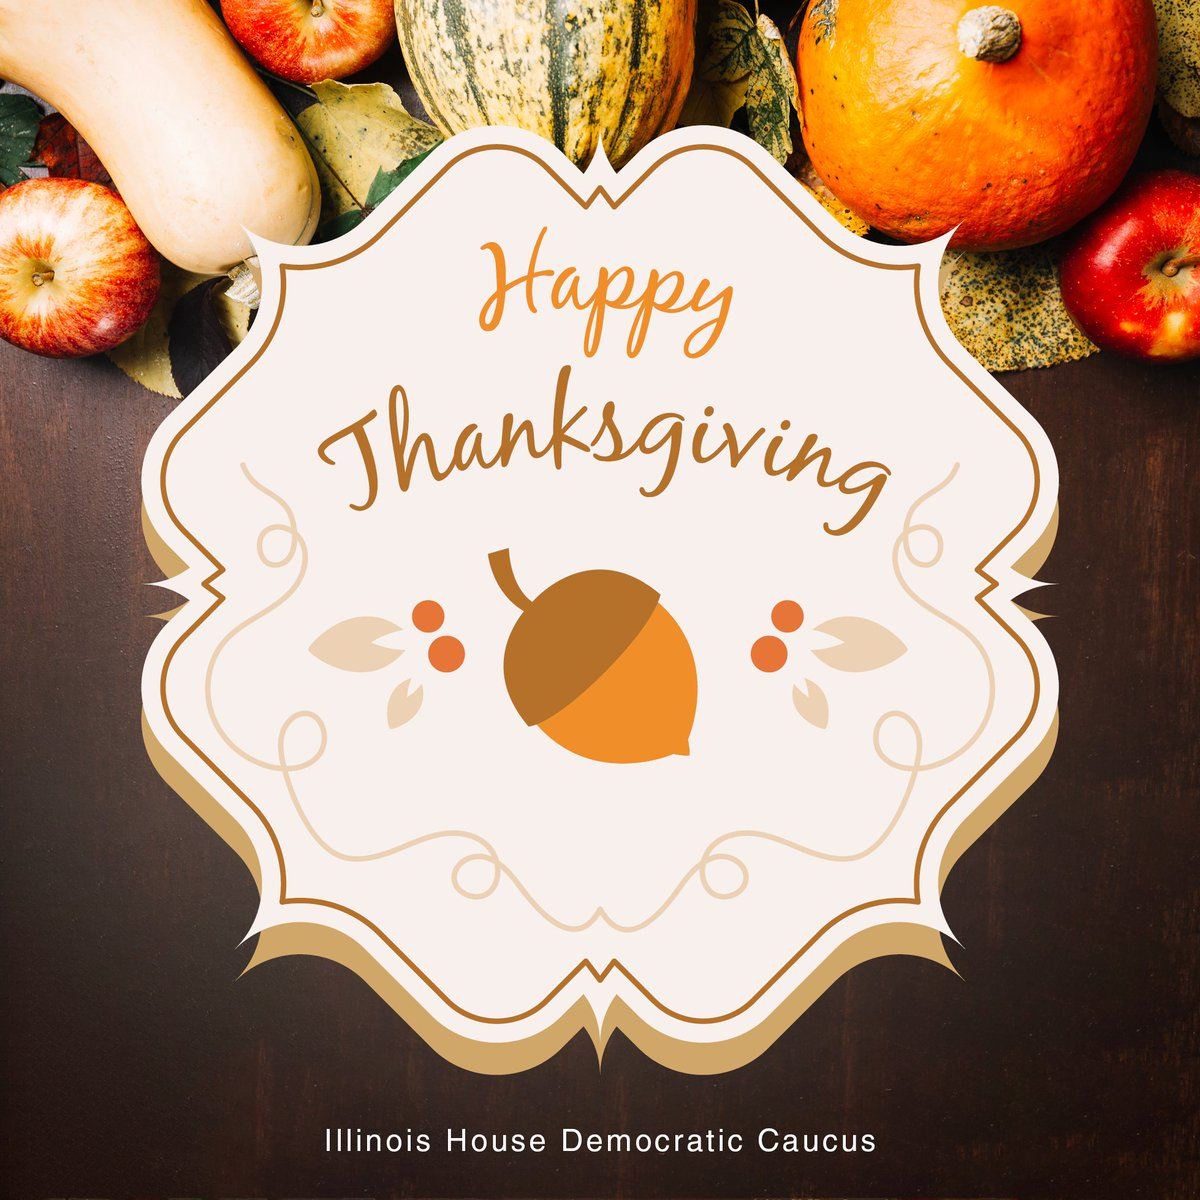 test Twitter Media - Wishing everyone a happy Thanksgiving with friends, family and loved ones! #HappyThanksgiving https://t.co/pIeIK4UQMg